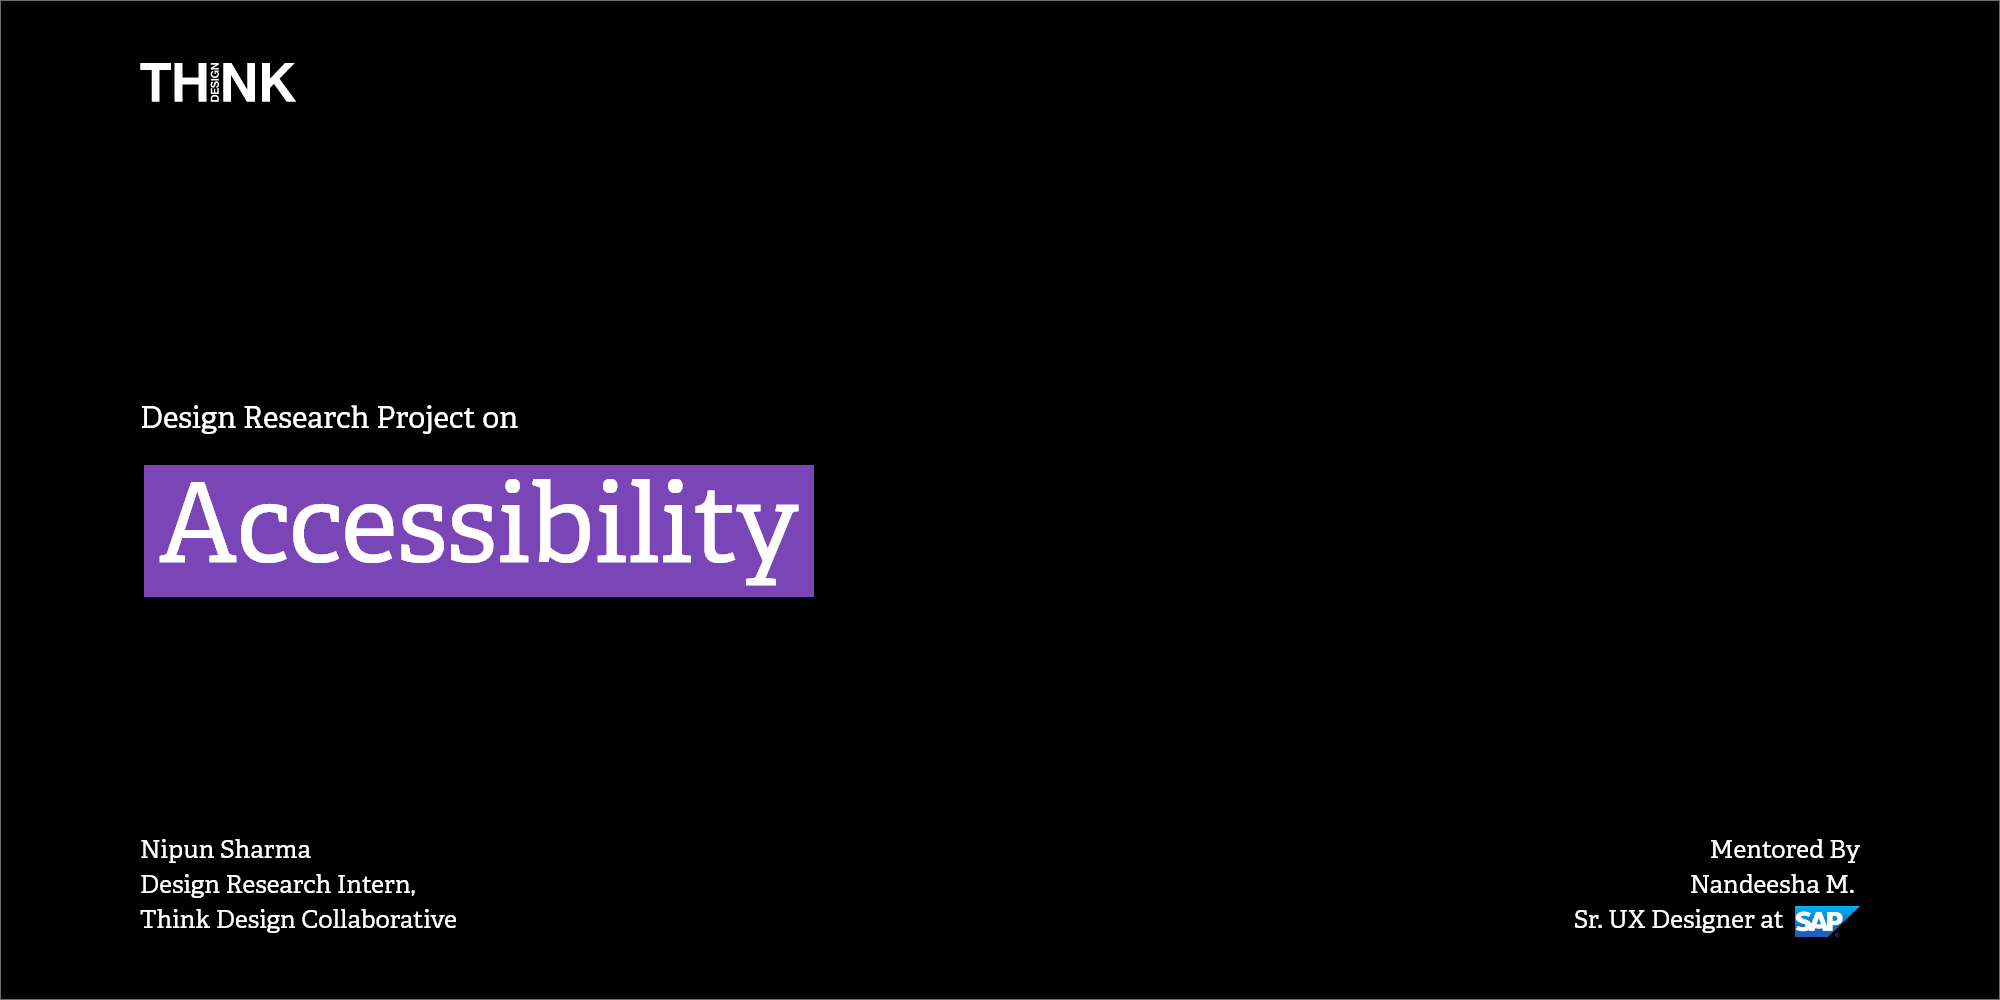 Design Research Project on Accessibility